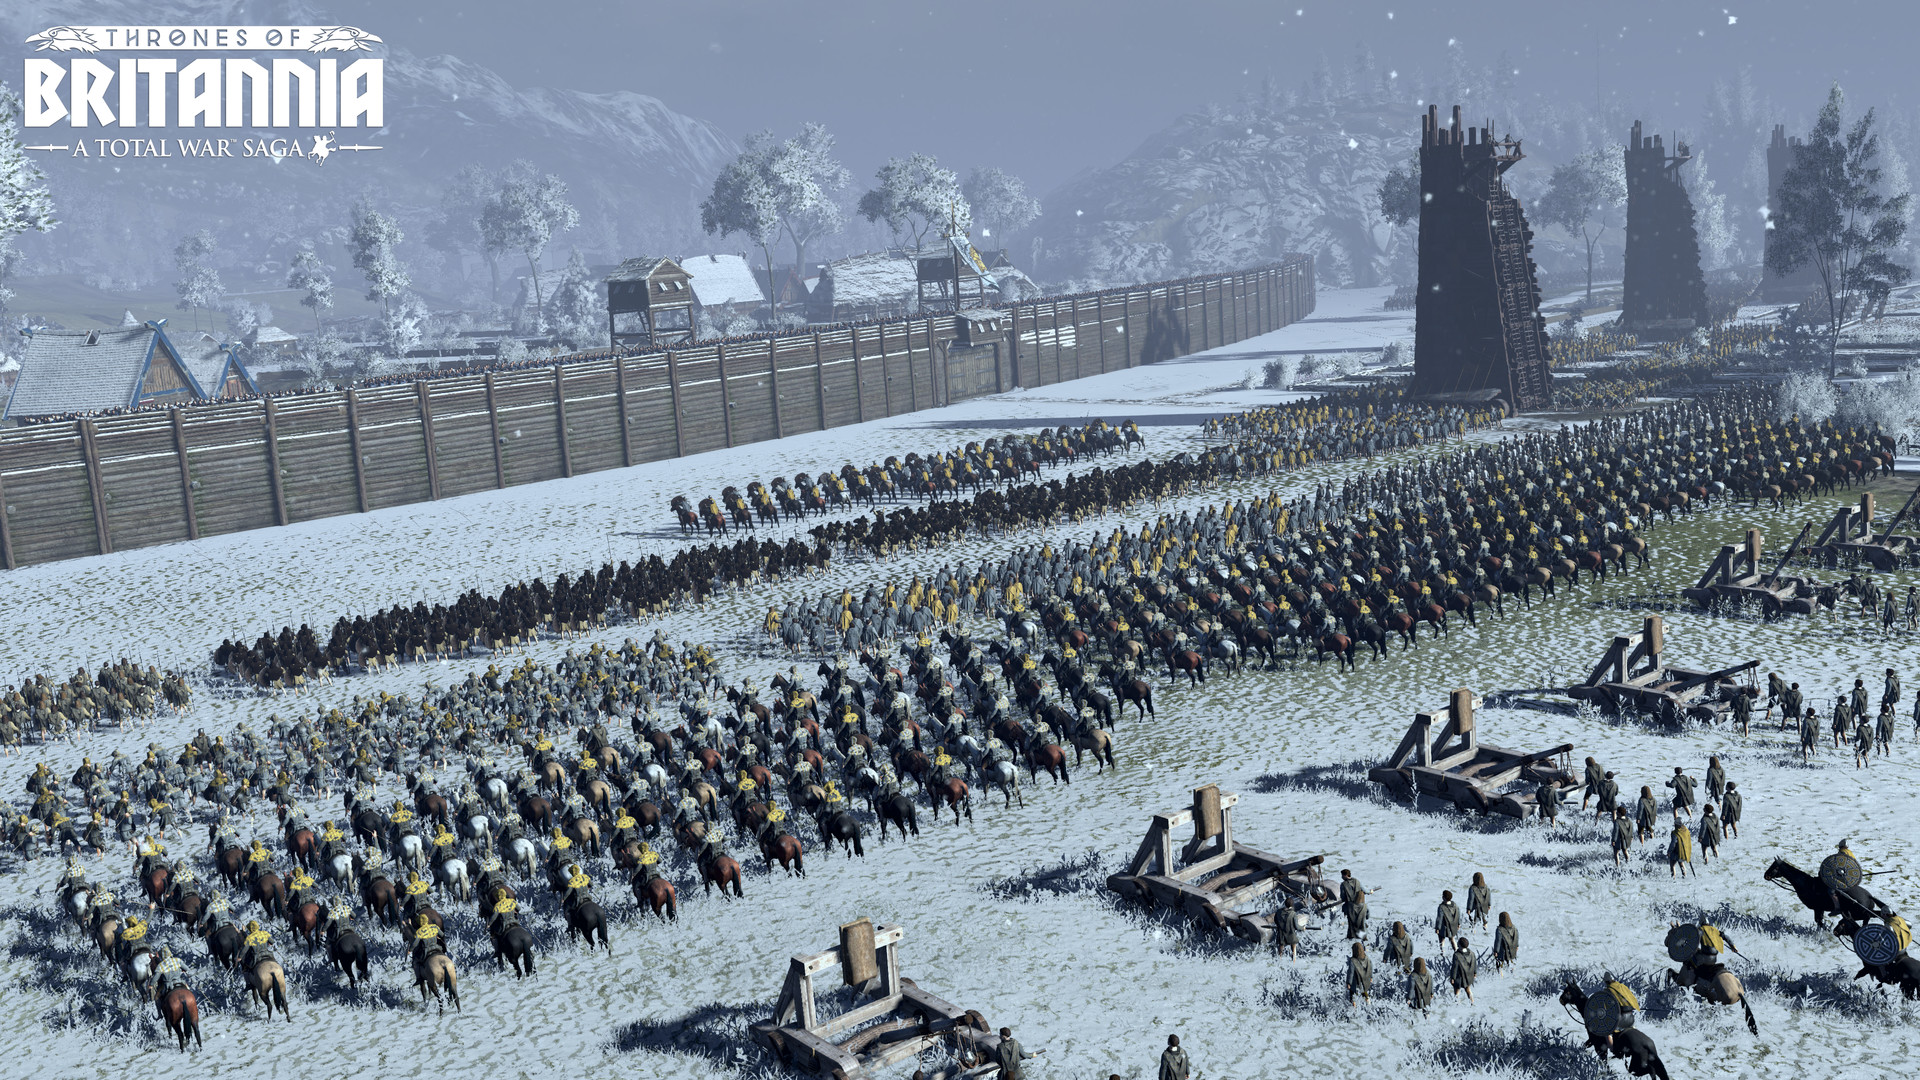 Thrones of Britannia' Is More Misadventure Than Reinvention for